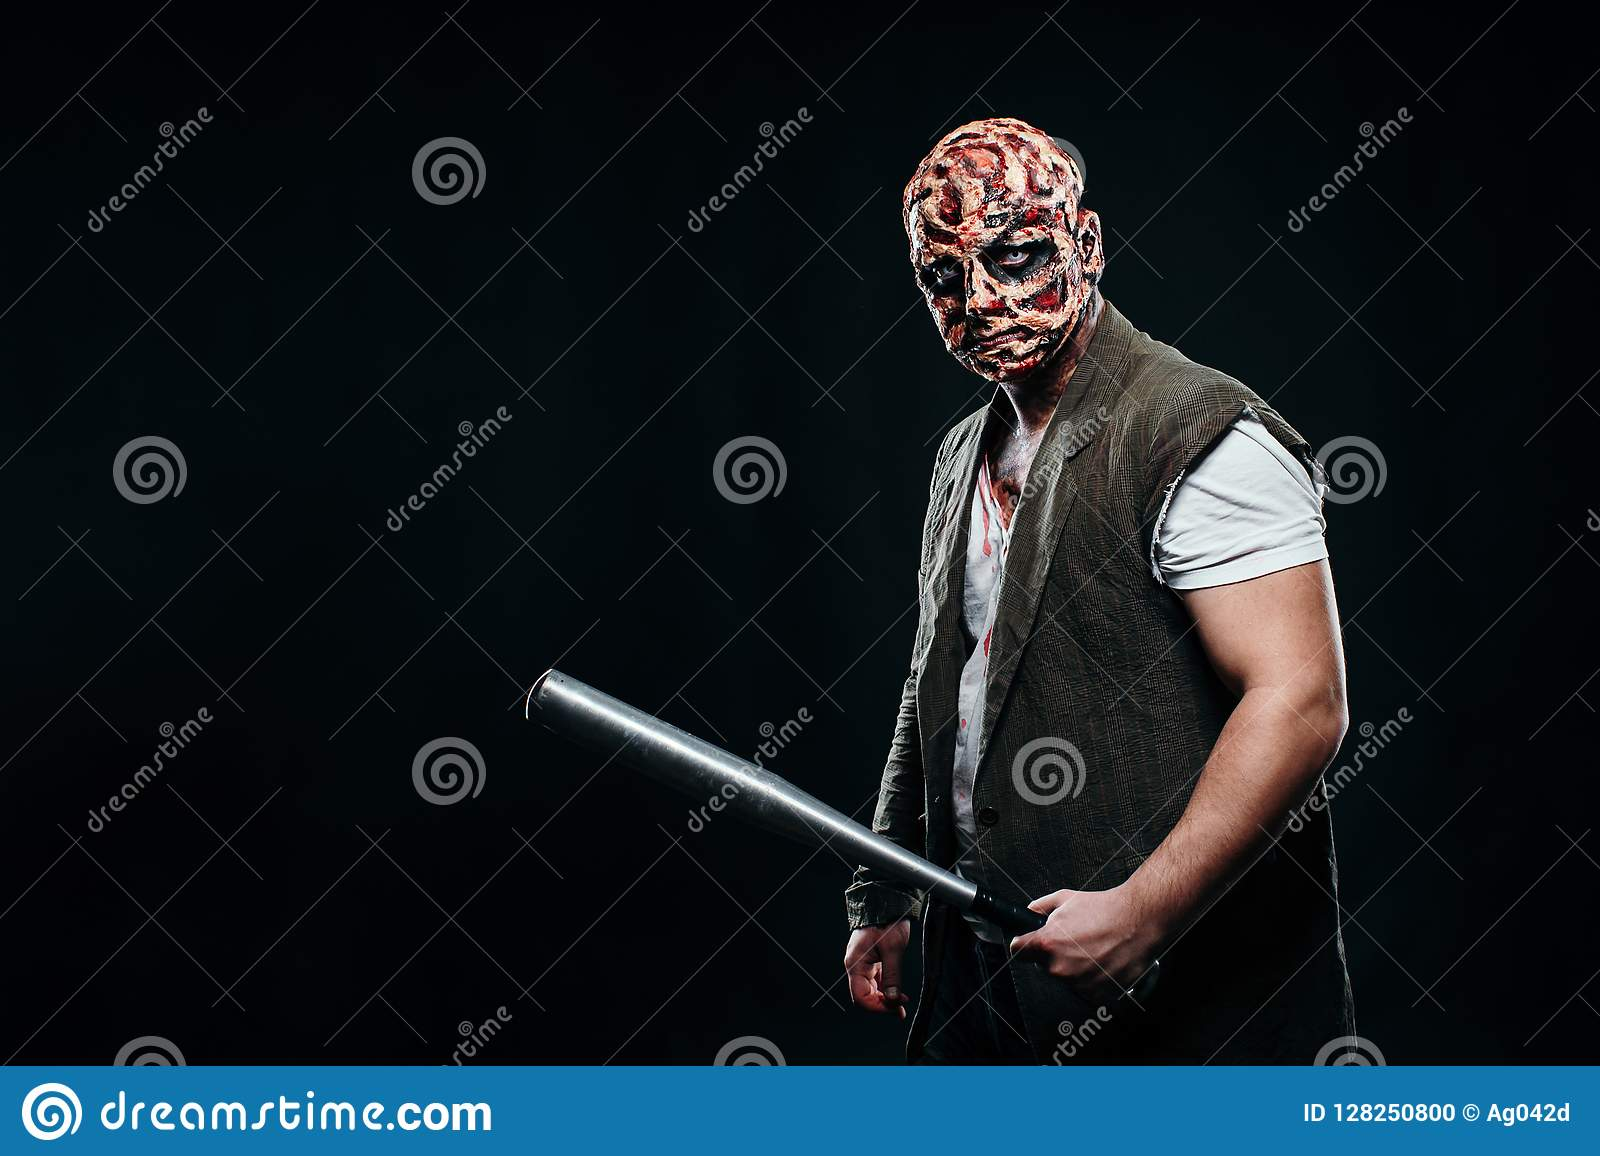 Carnival Halloween Theme.Scary Halloween Theme And Halloween Makeup Scary Man With A